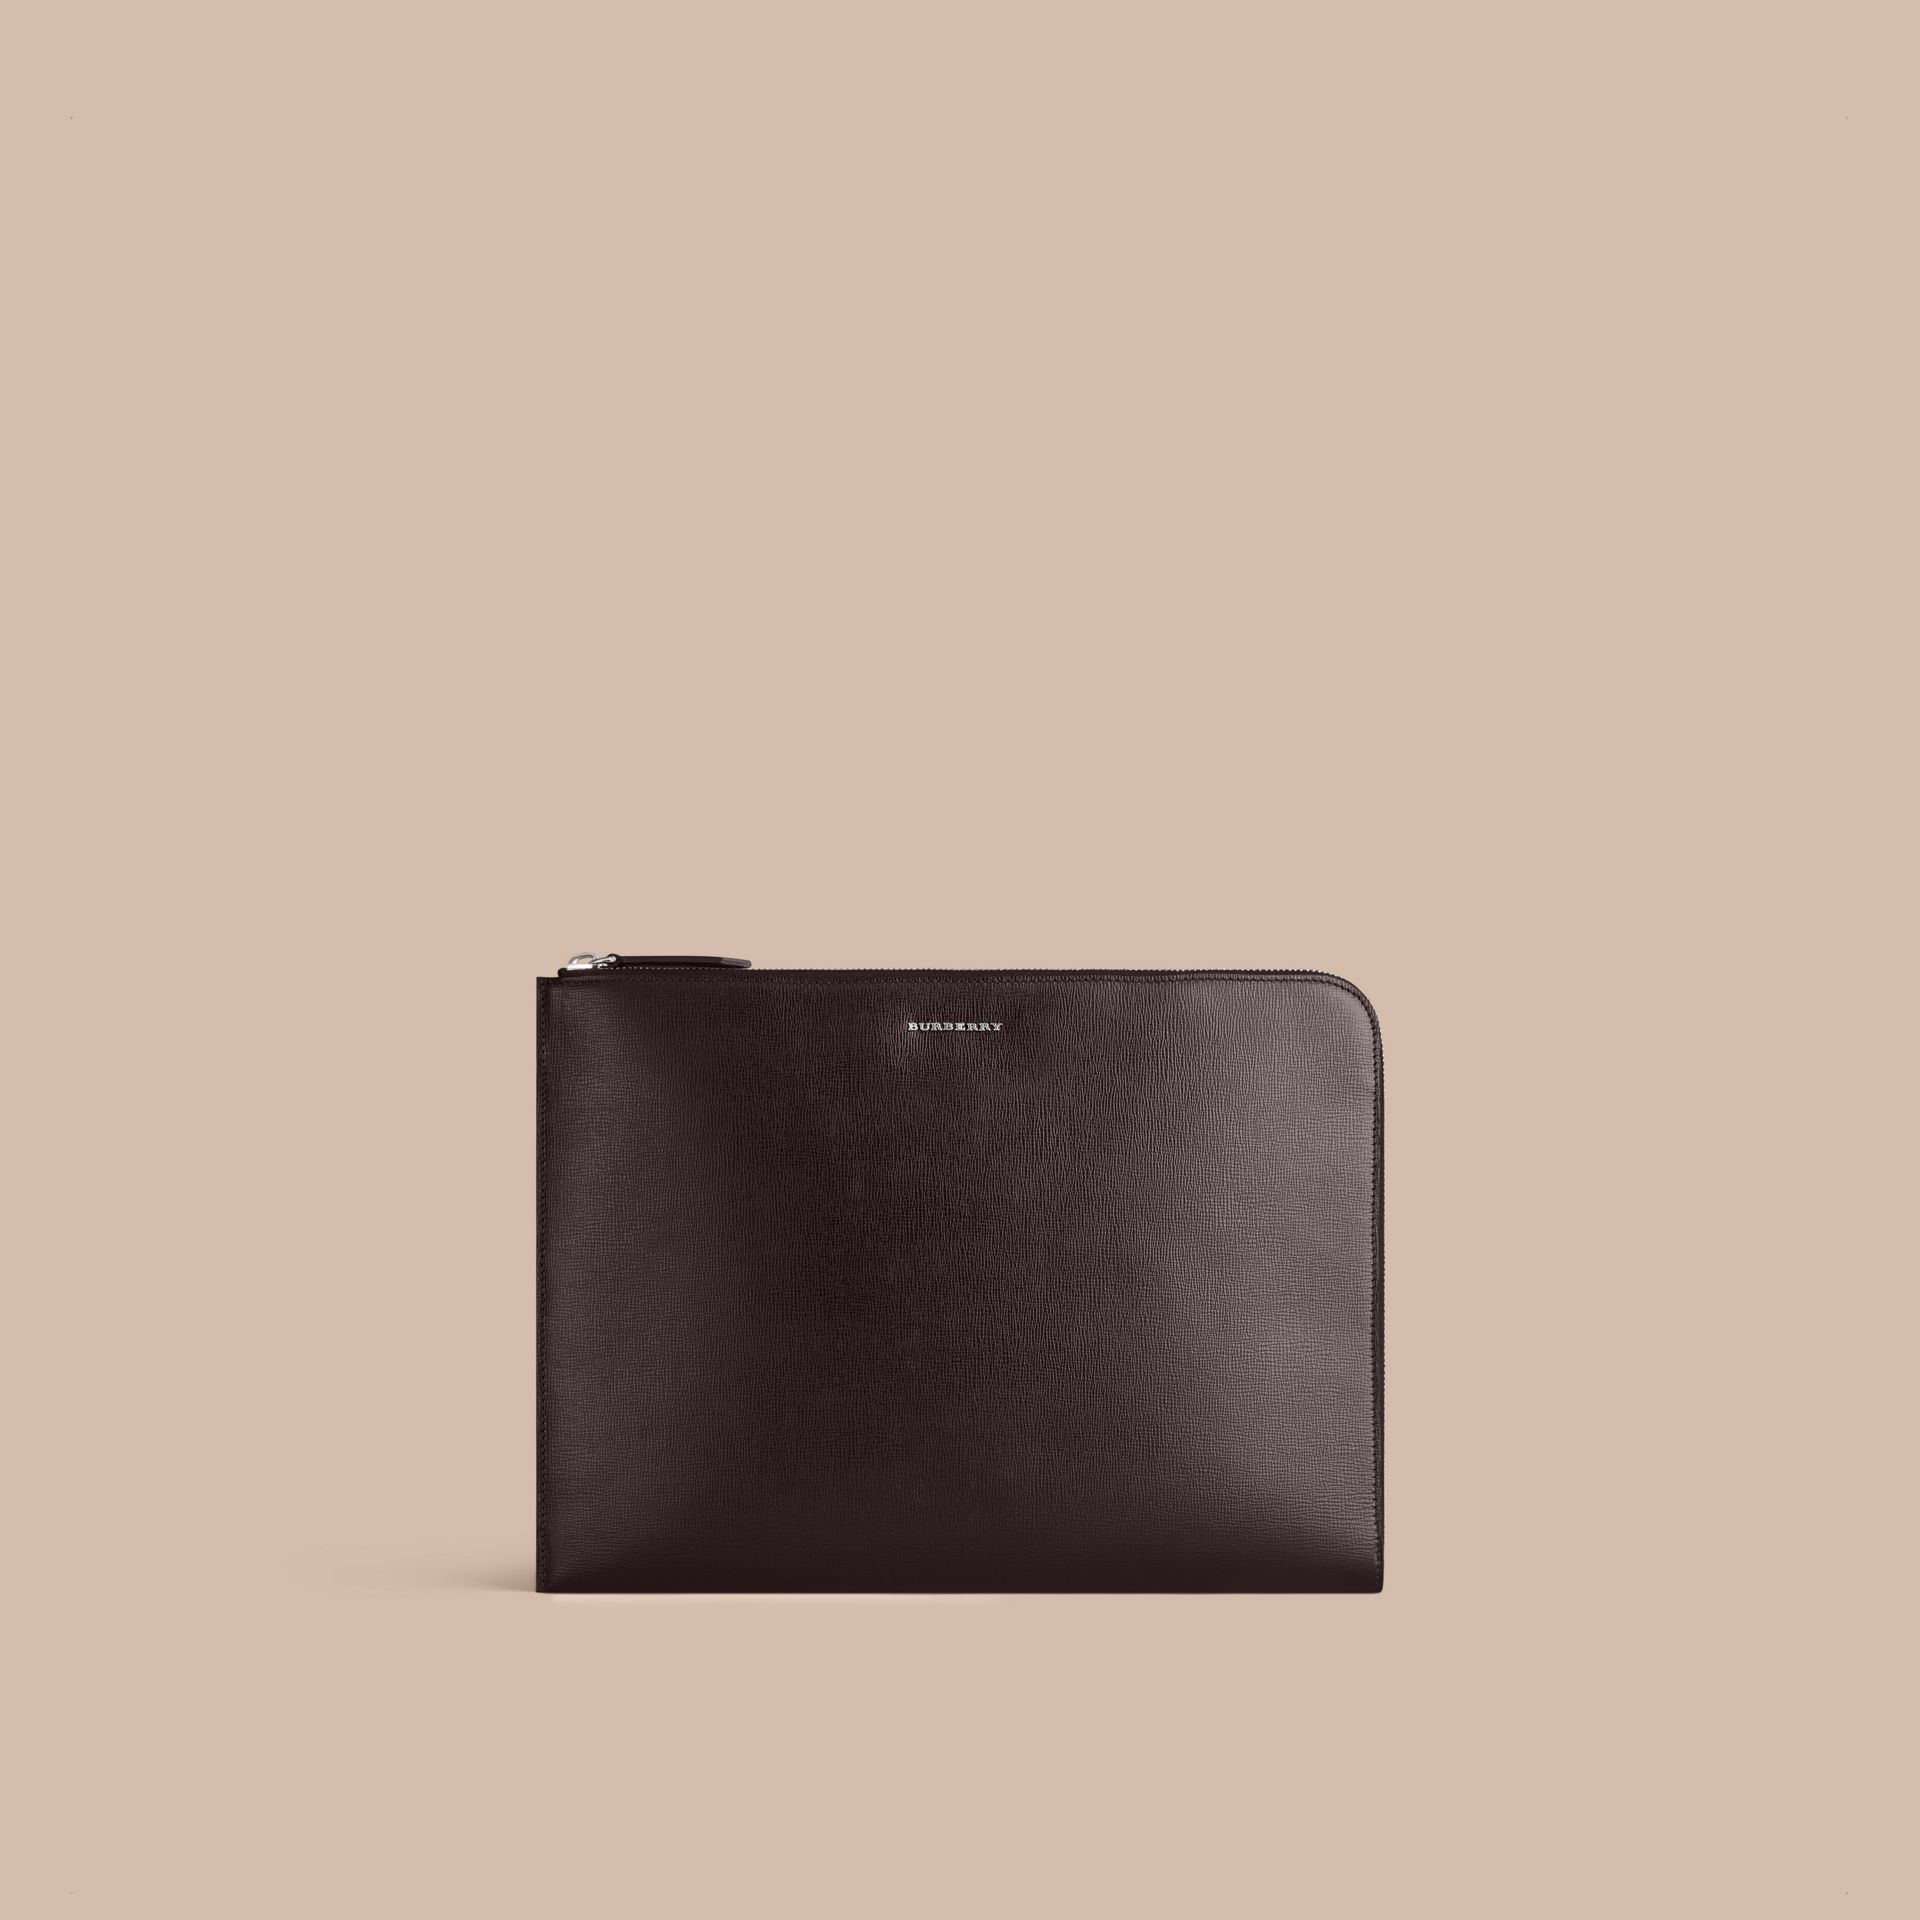 London Leather Document Case in Black - gallery image 1